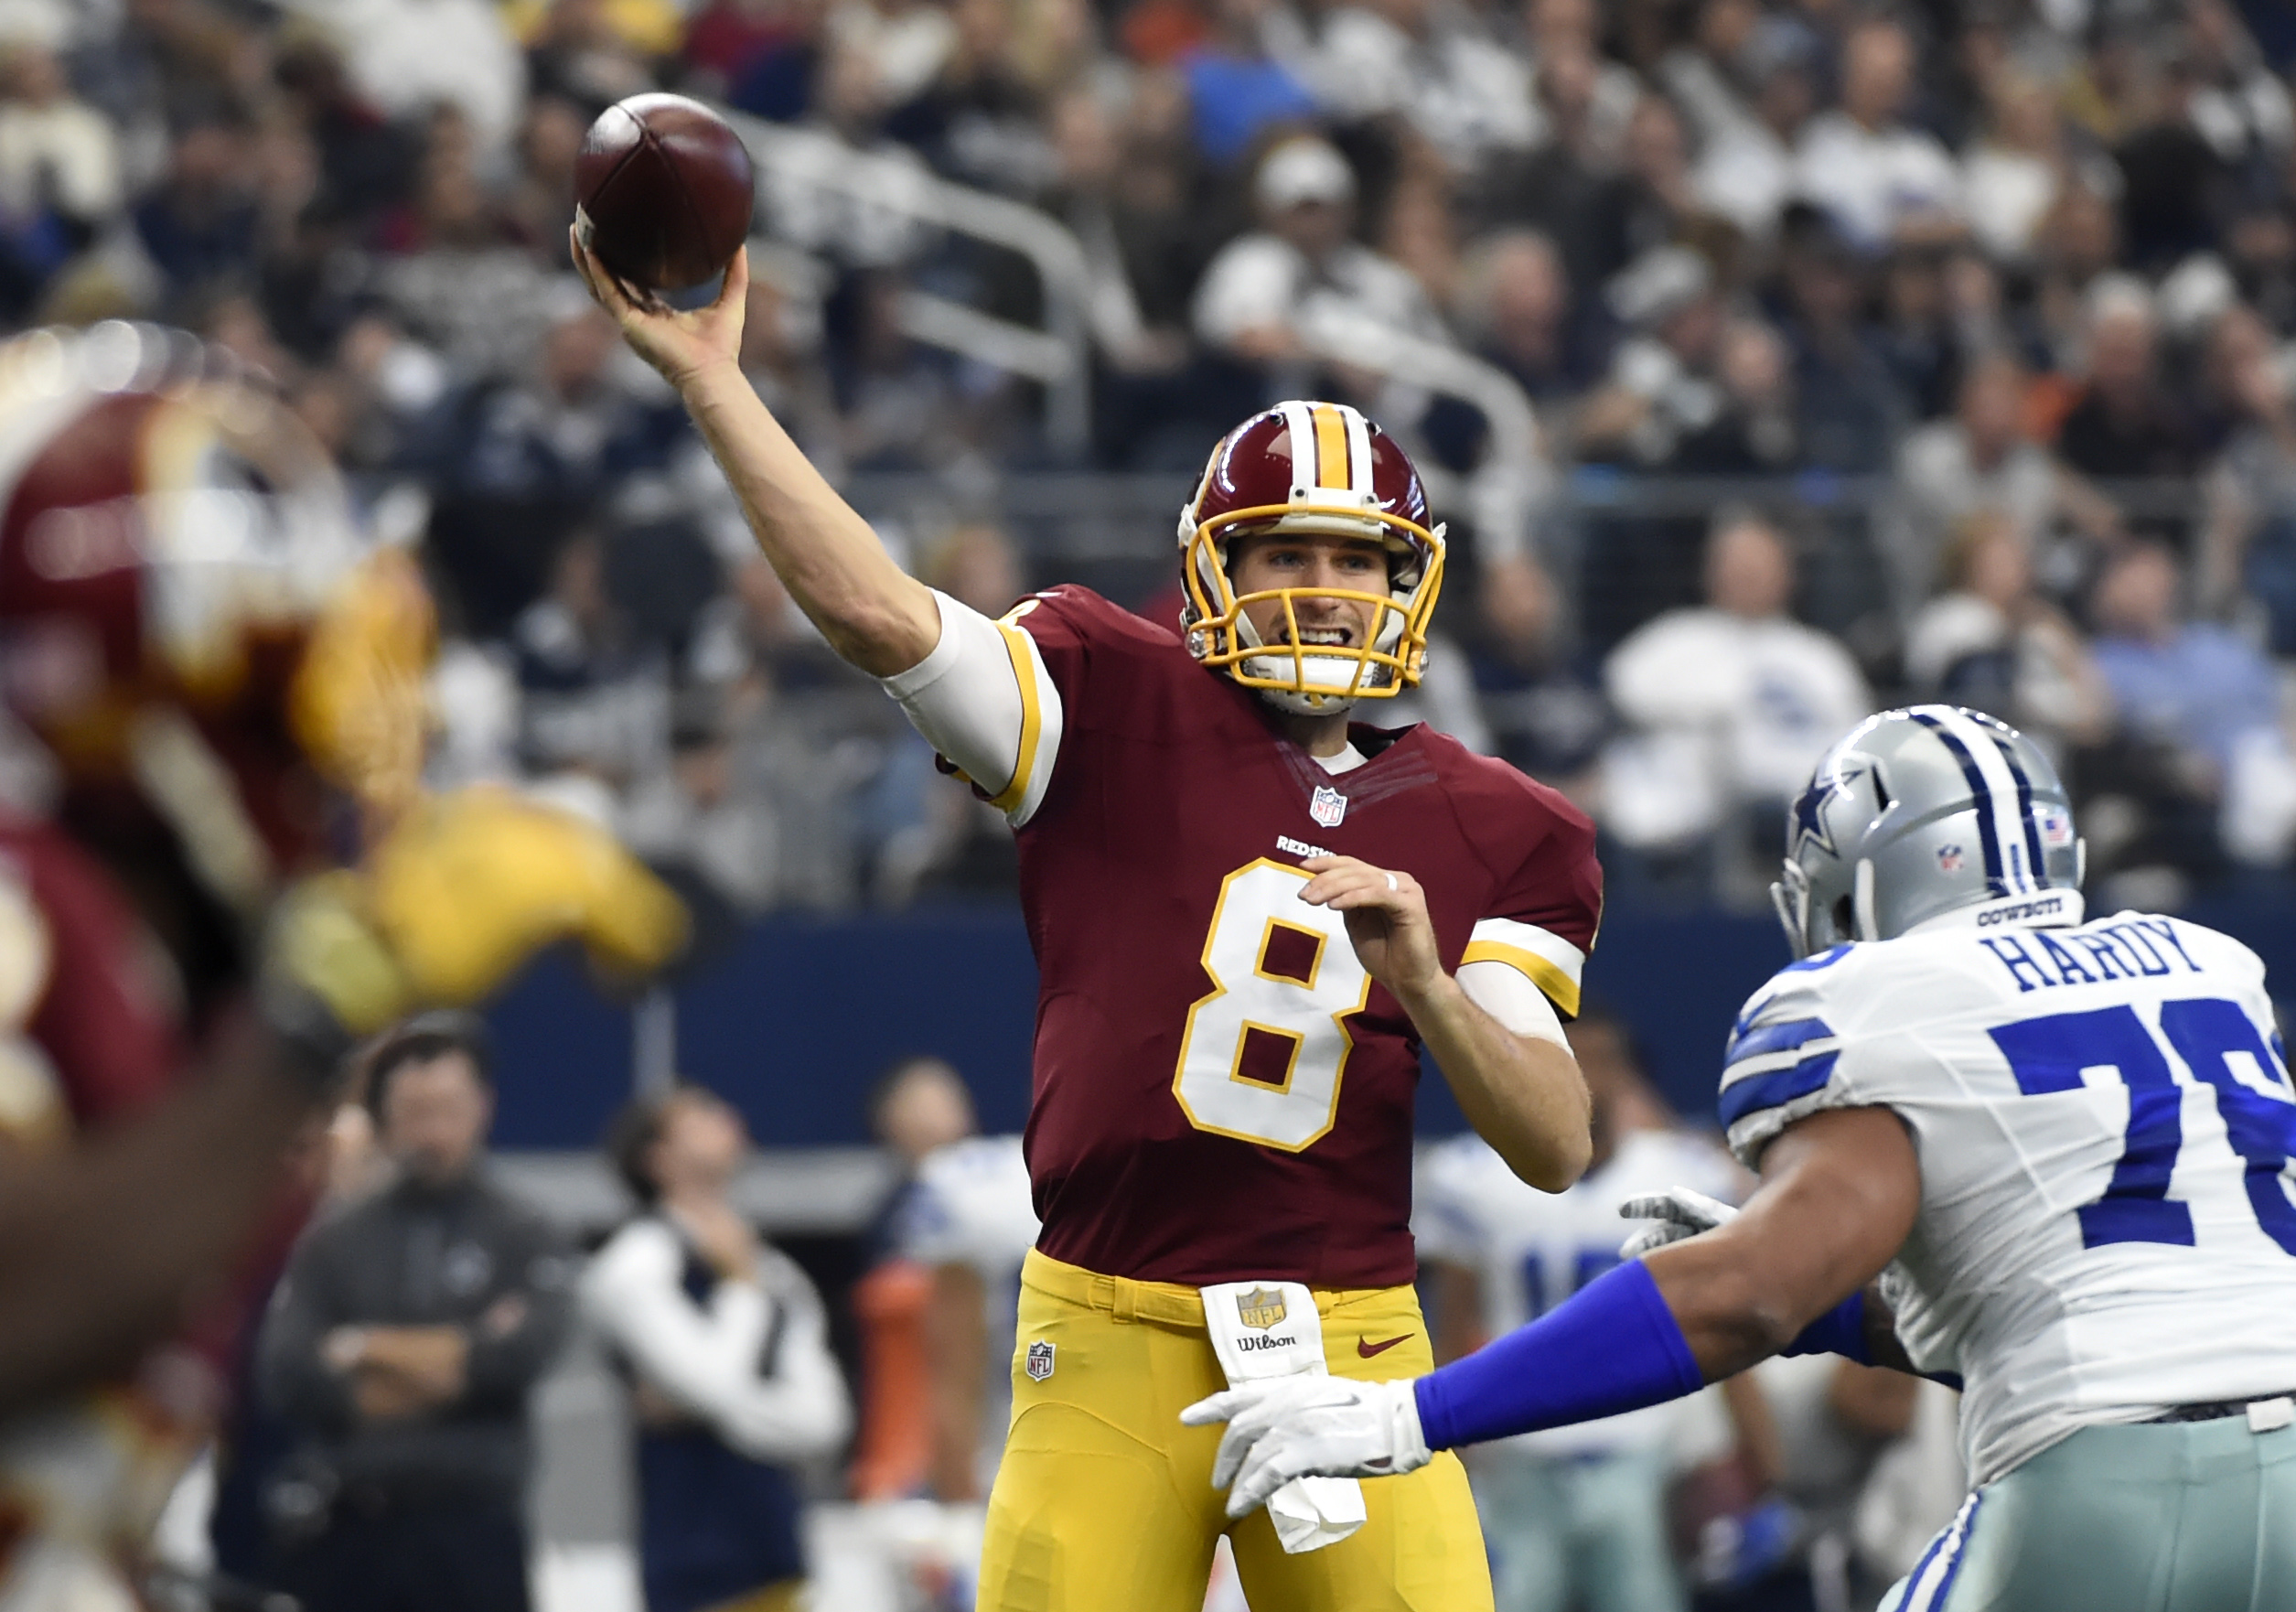 Washington Redskins quarterback Kirk Cousins (8) looks to throw a pass under pressure from Dallas Cowboys defensive end Greg Hardy (76) in the first half of an NFL football game, Sunday, Jan. 3, 2016, in Arlington, Texas. (AP Photo/Michael Ainsworth)